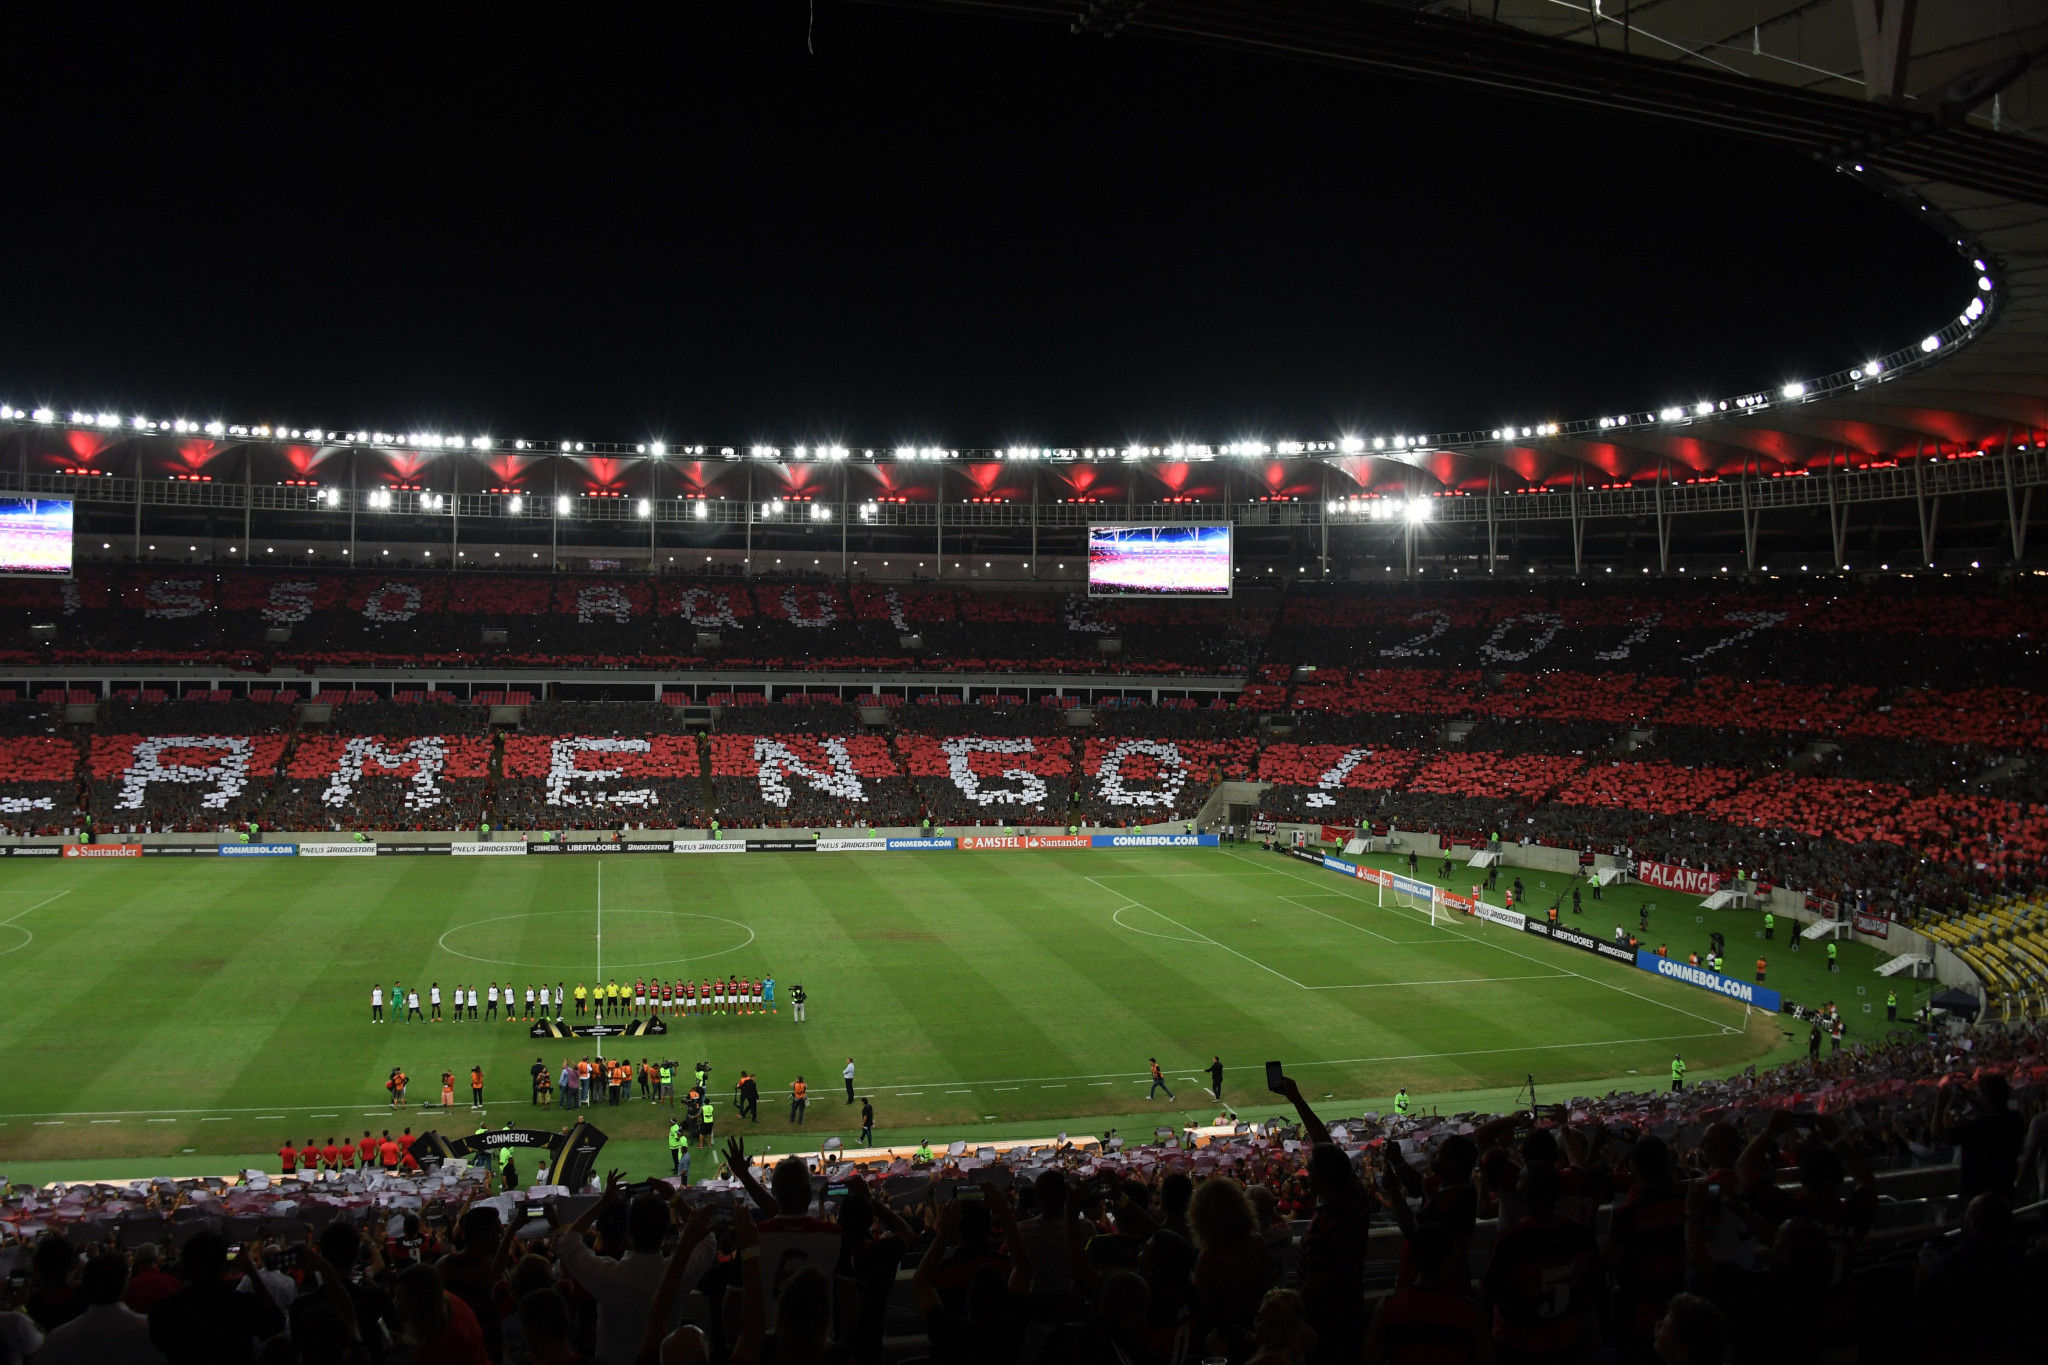 Flamengo to play at Maracanã until 2022